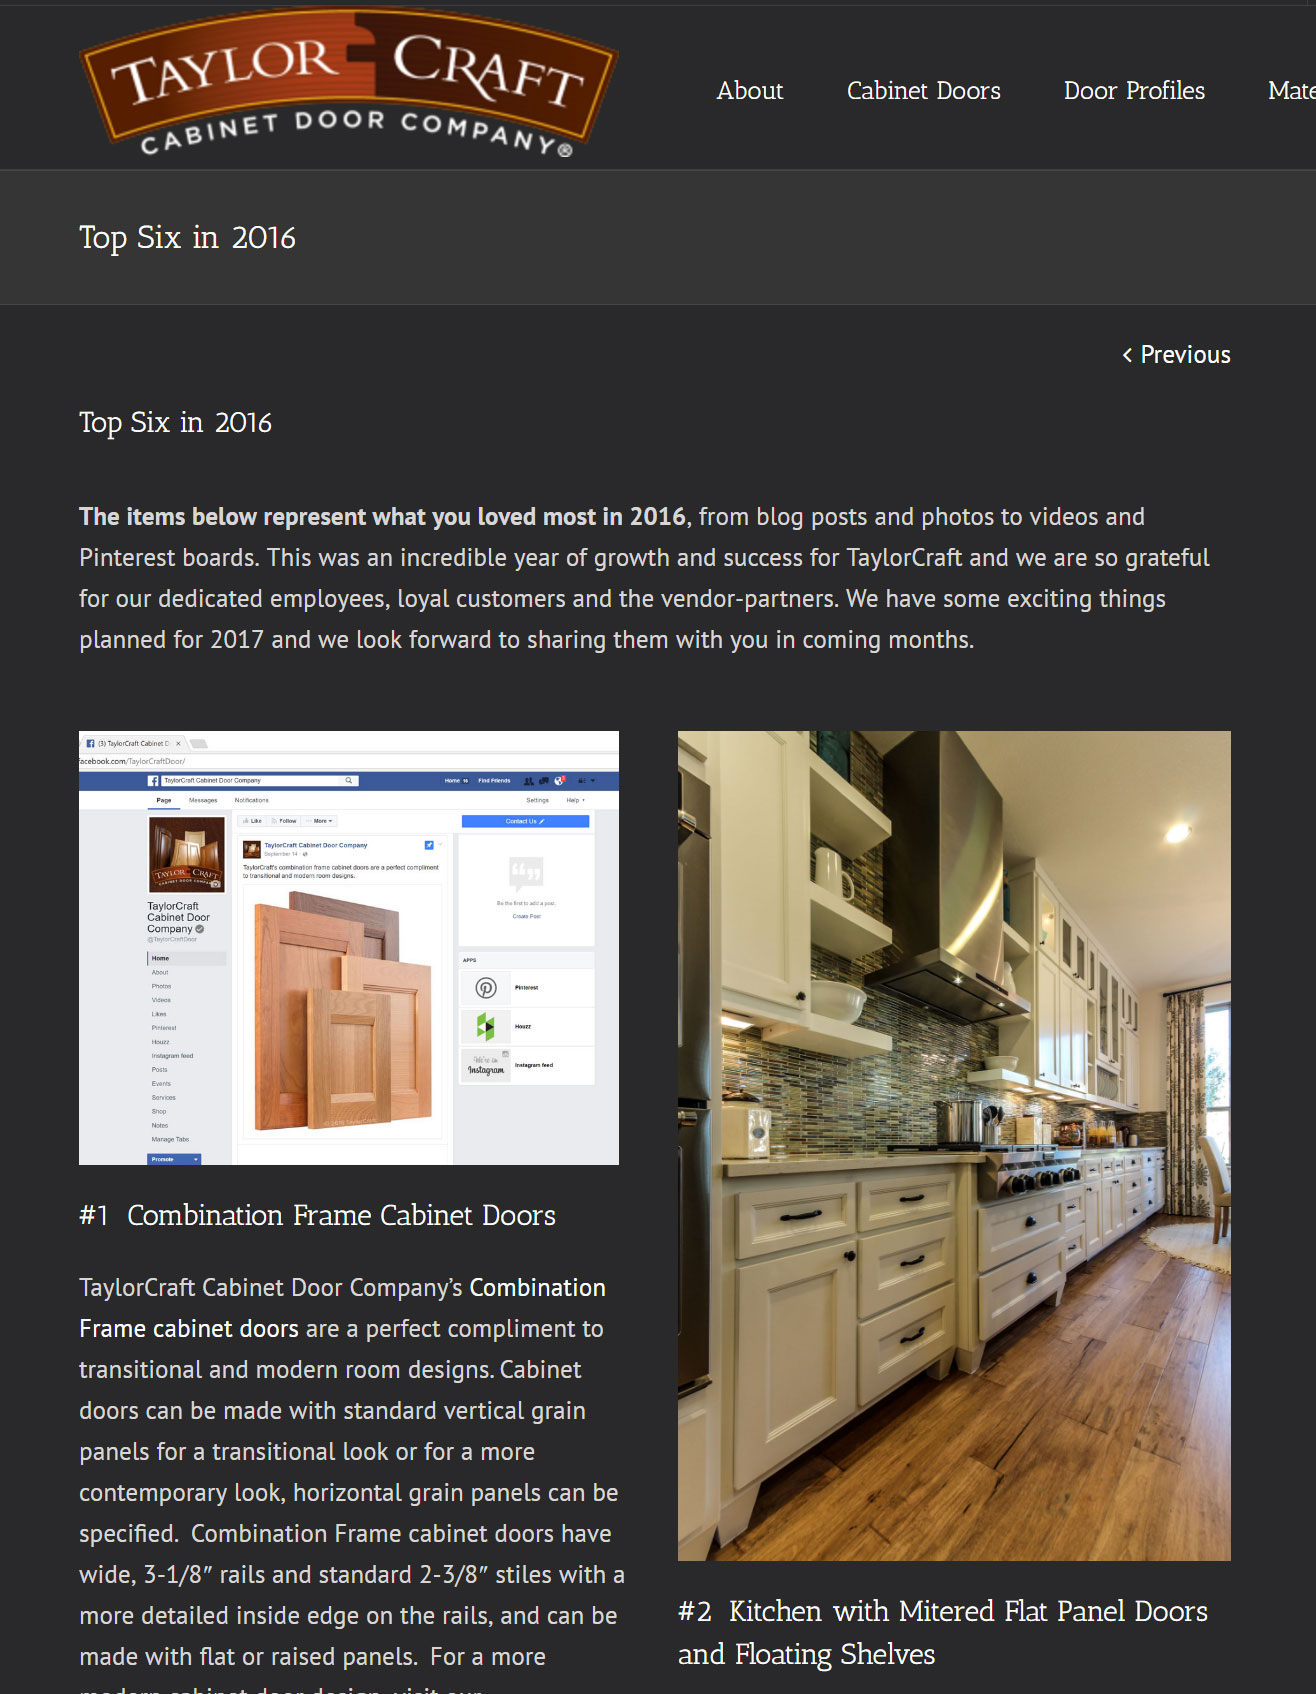 Top Six in 2016 - TaylorCraft Cabinet Door Company